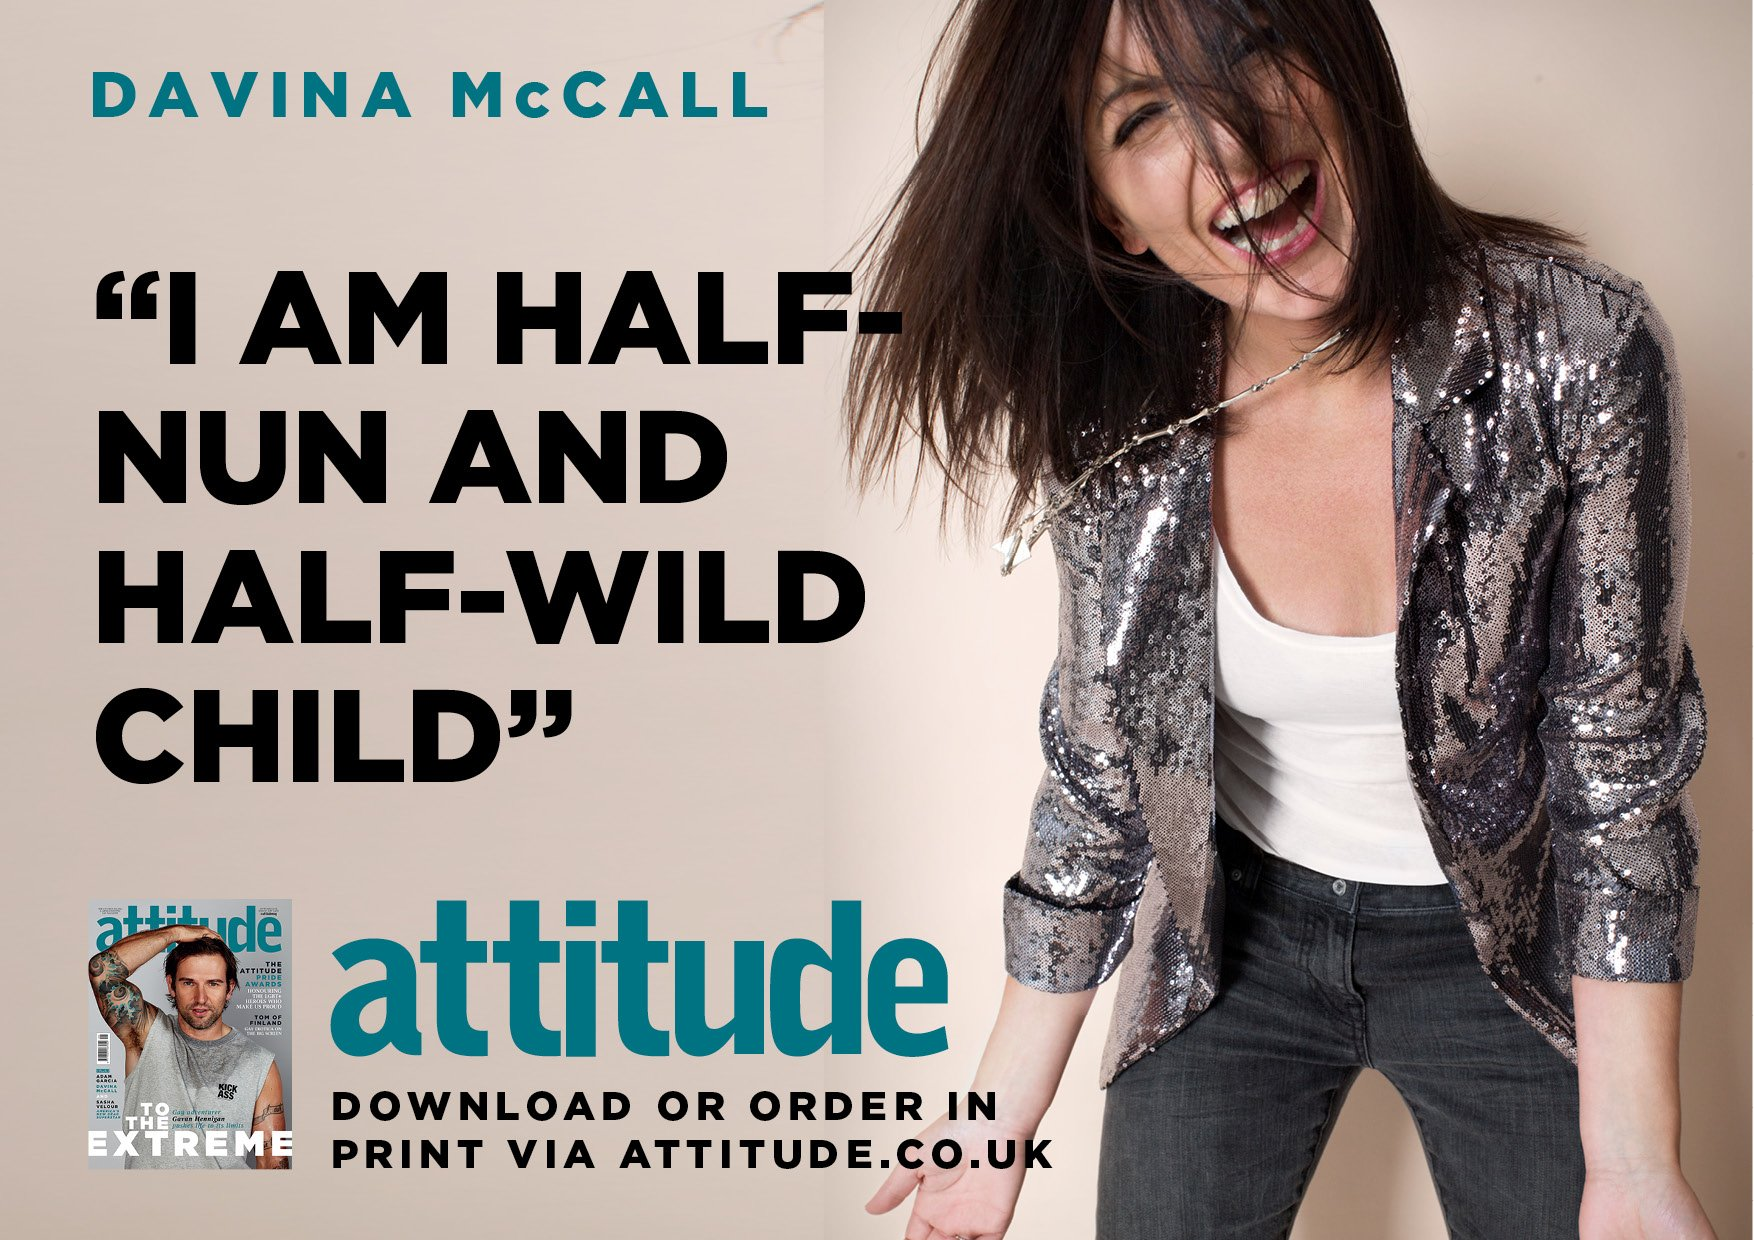 RT @AttitudeMag: We love @ThisisDavina, and we've got her in our August issue. Get it here: https://t.co/XjyW7m7AkJ https://t.co/LRZs5JCjI8